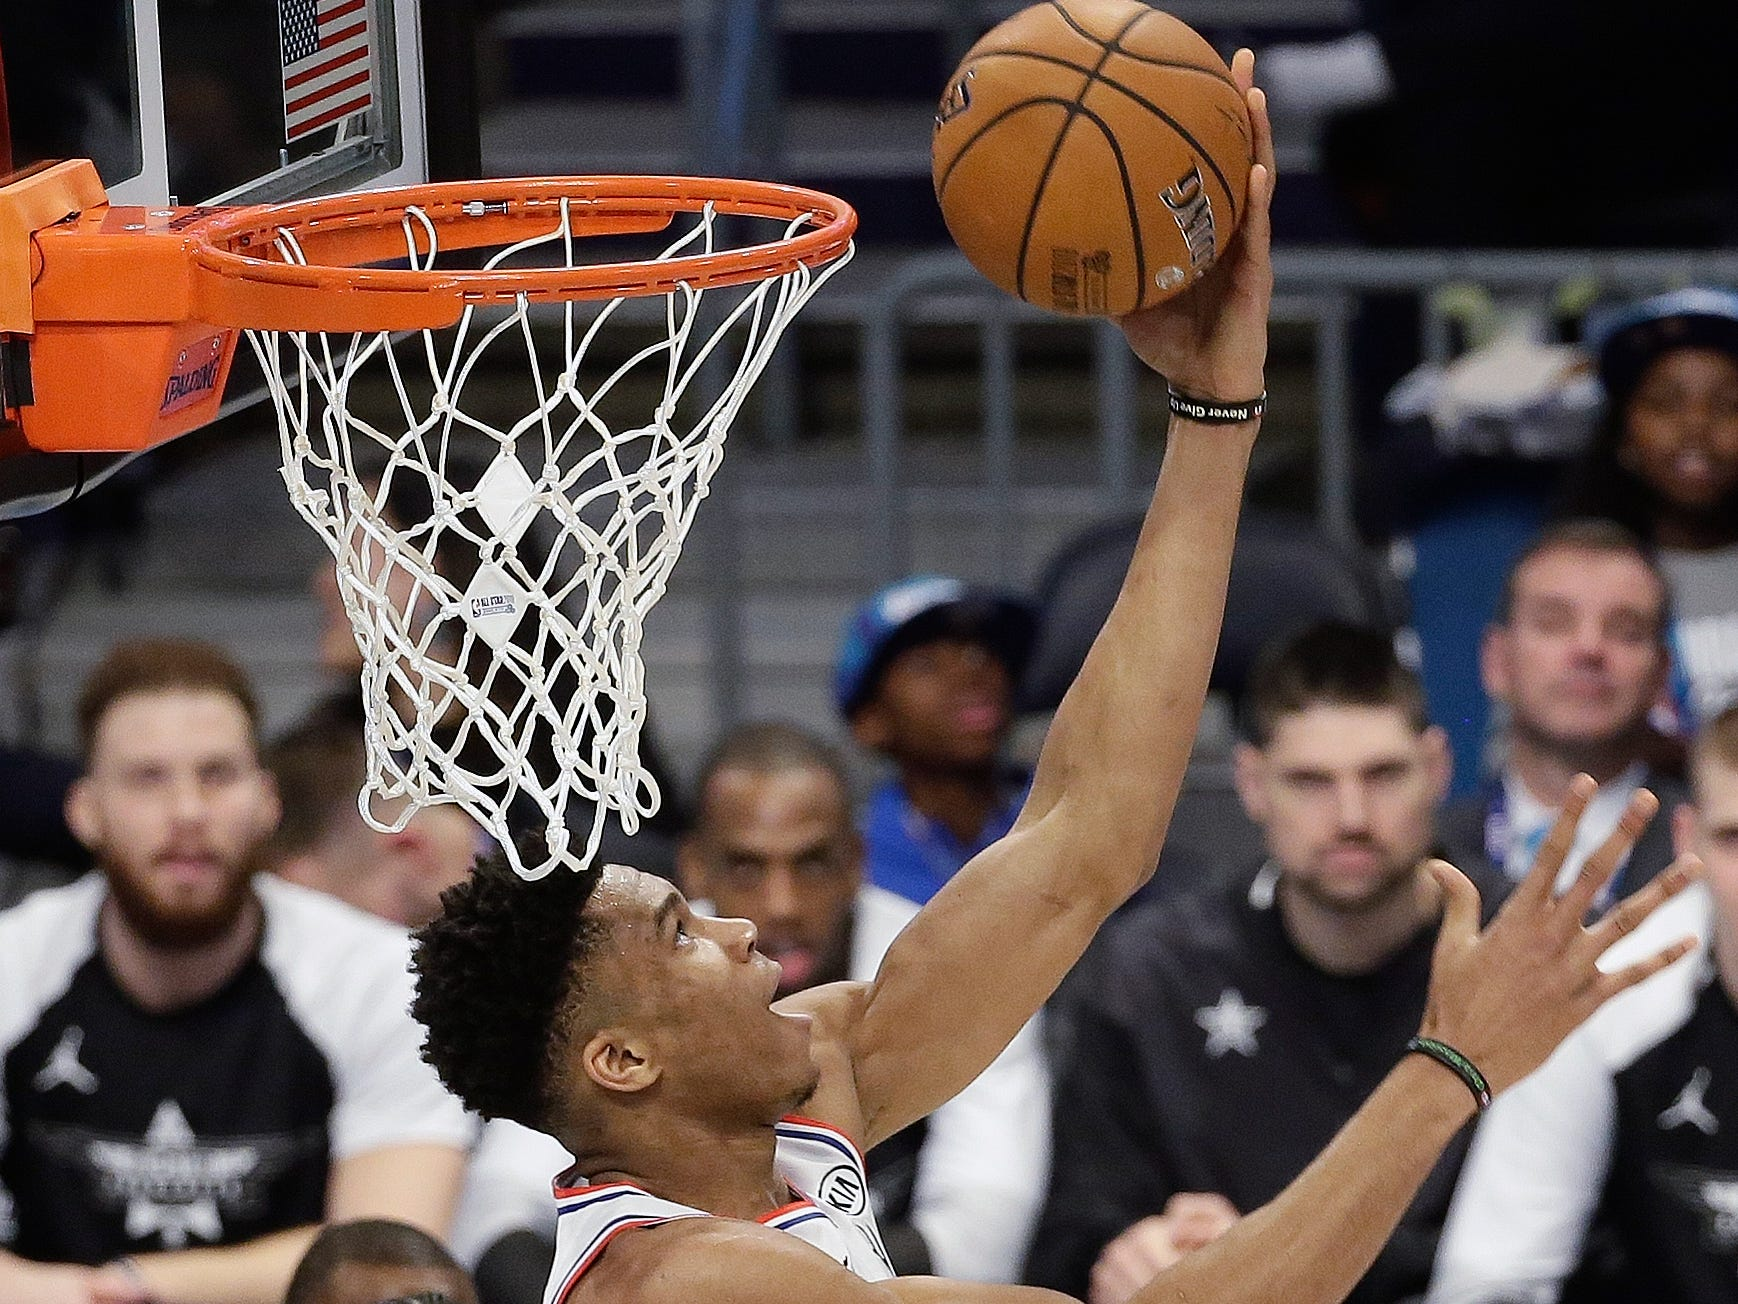 Giannis Antetokounmpo rises above the rim during the NBA All-Star Game.